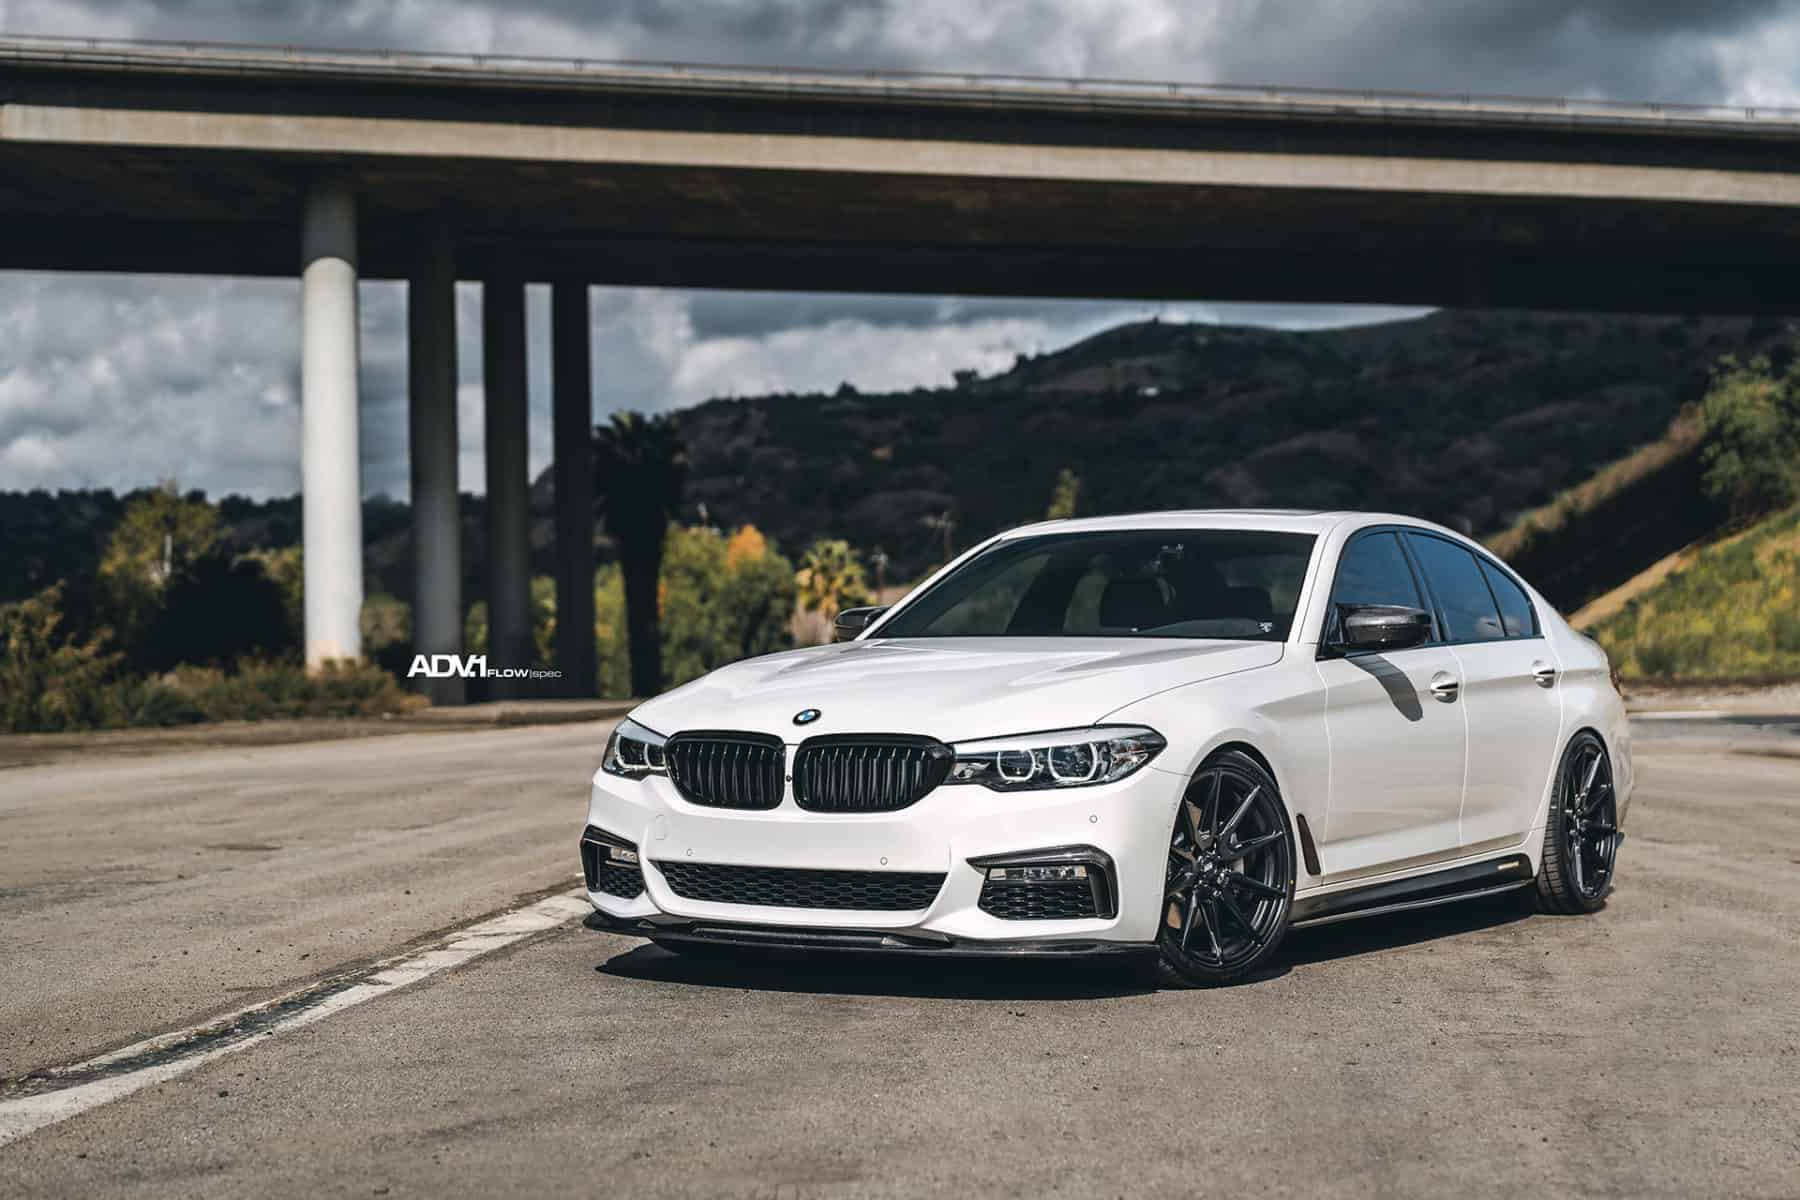 BMW G30 5 Series ADV.1 Wheels & 3Ddesign Aero